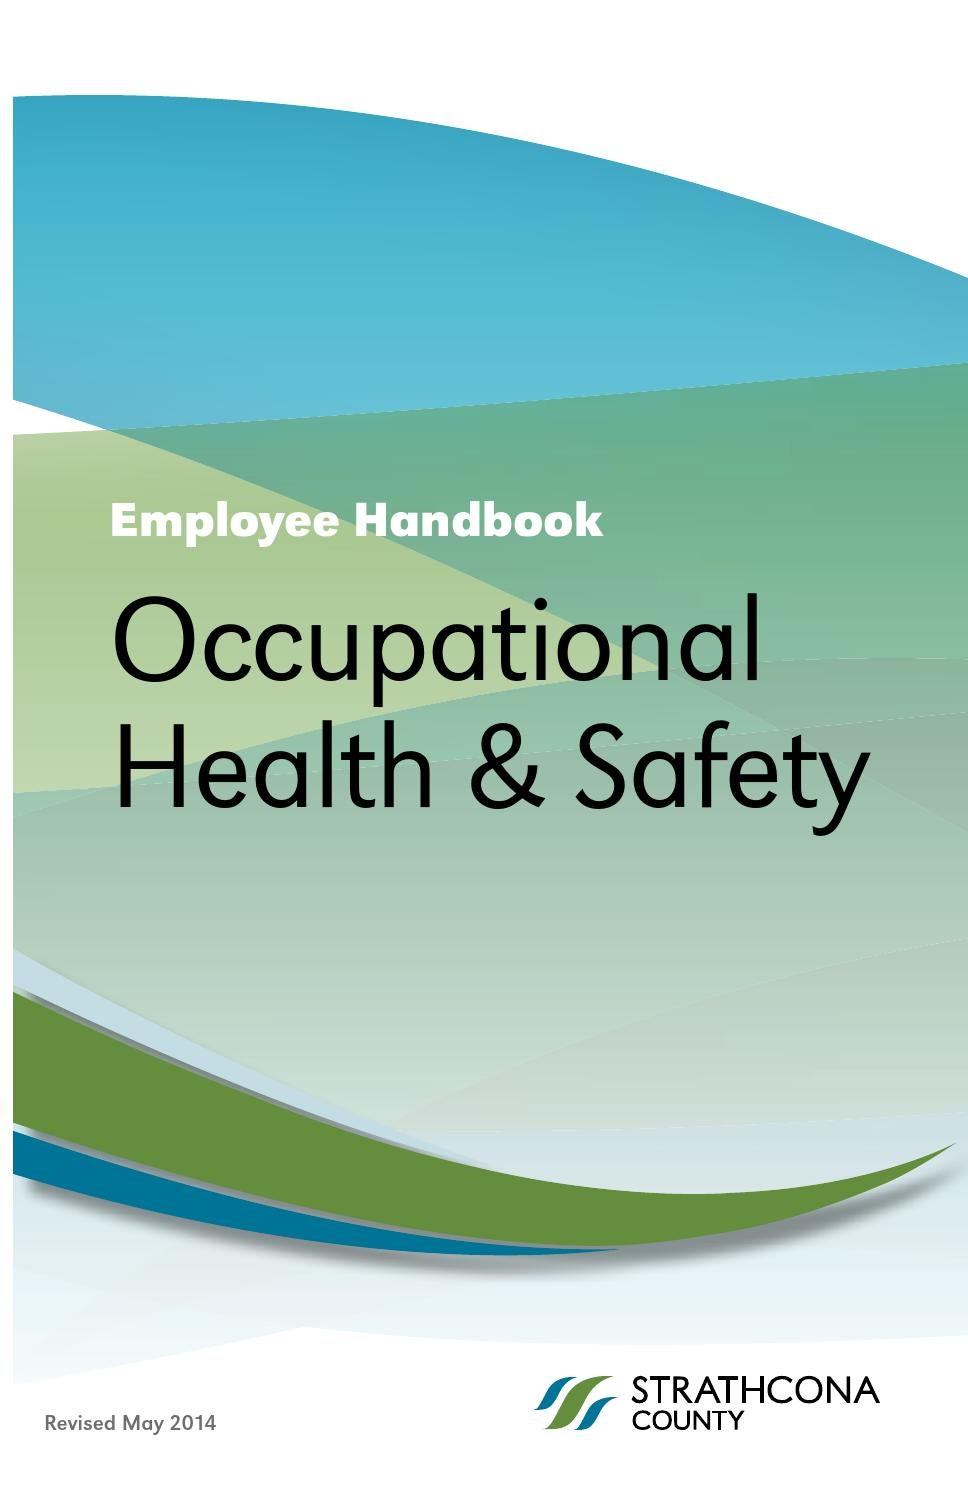 occupational health and safety strathcona county occupational health and safety handbook